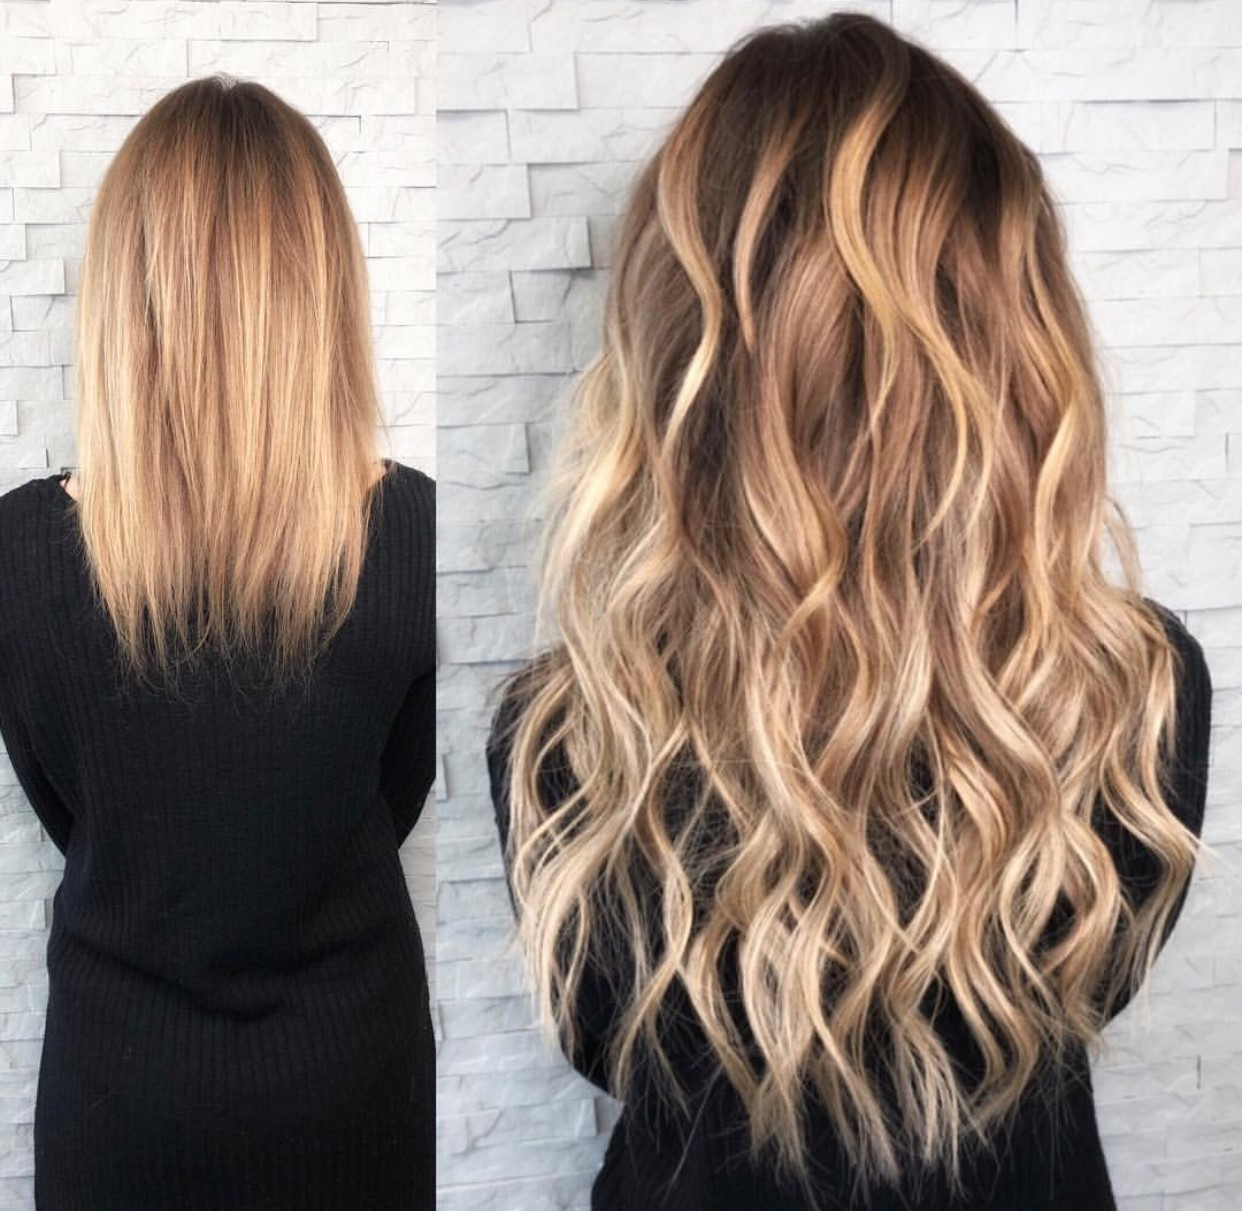 Blonde wavy extensions before and after by Katie Tellor